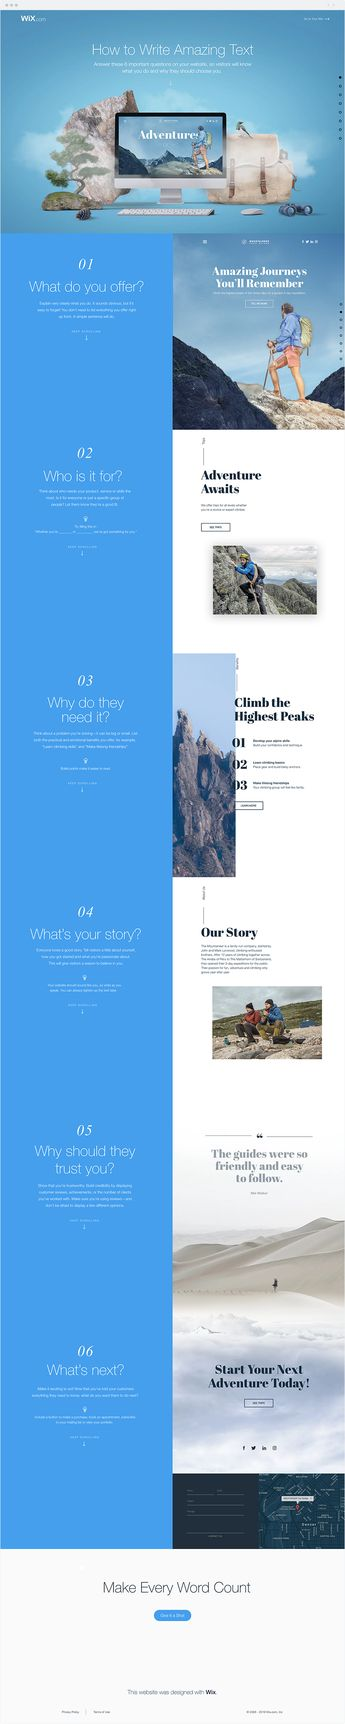 Looking for tips on writing amazing text for your website? Discover this writing guide from Wix on the 6 important questions you need to answer on your website.